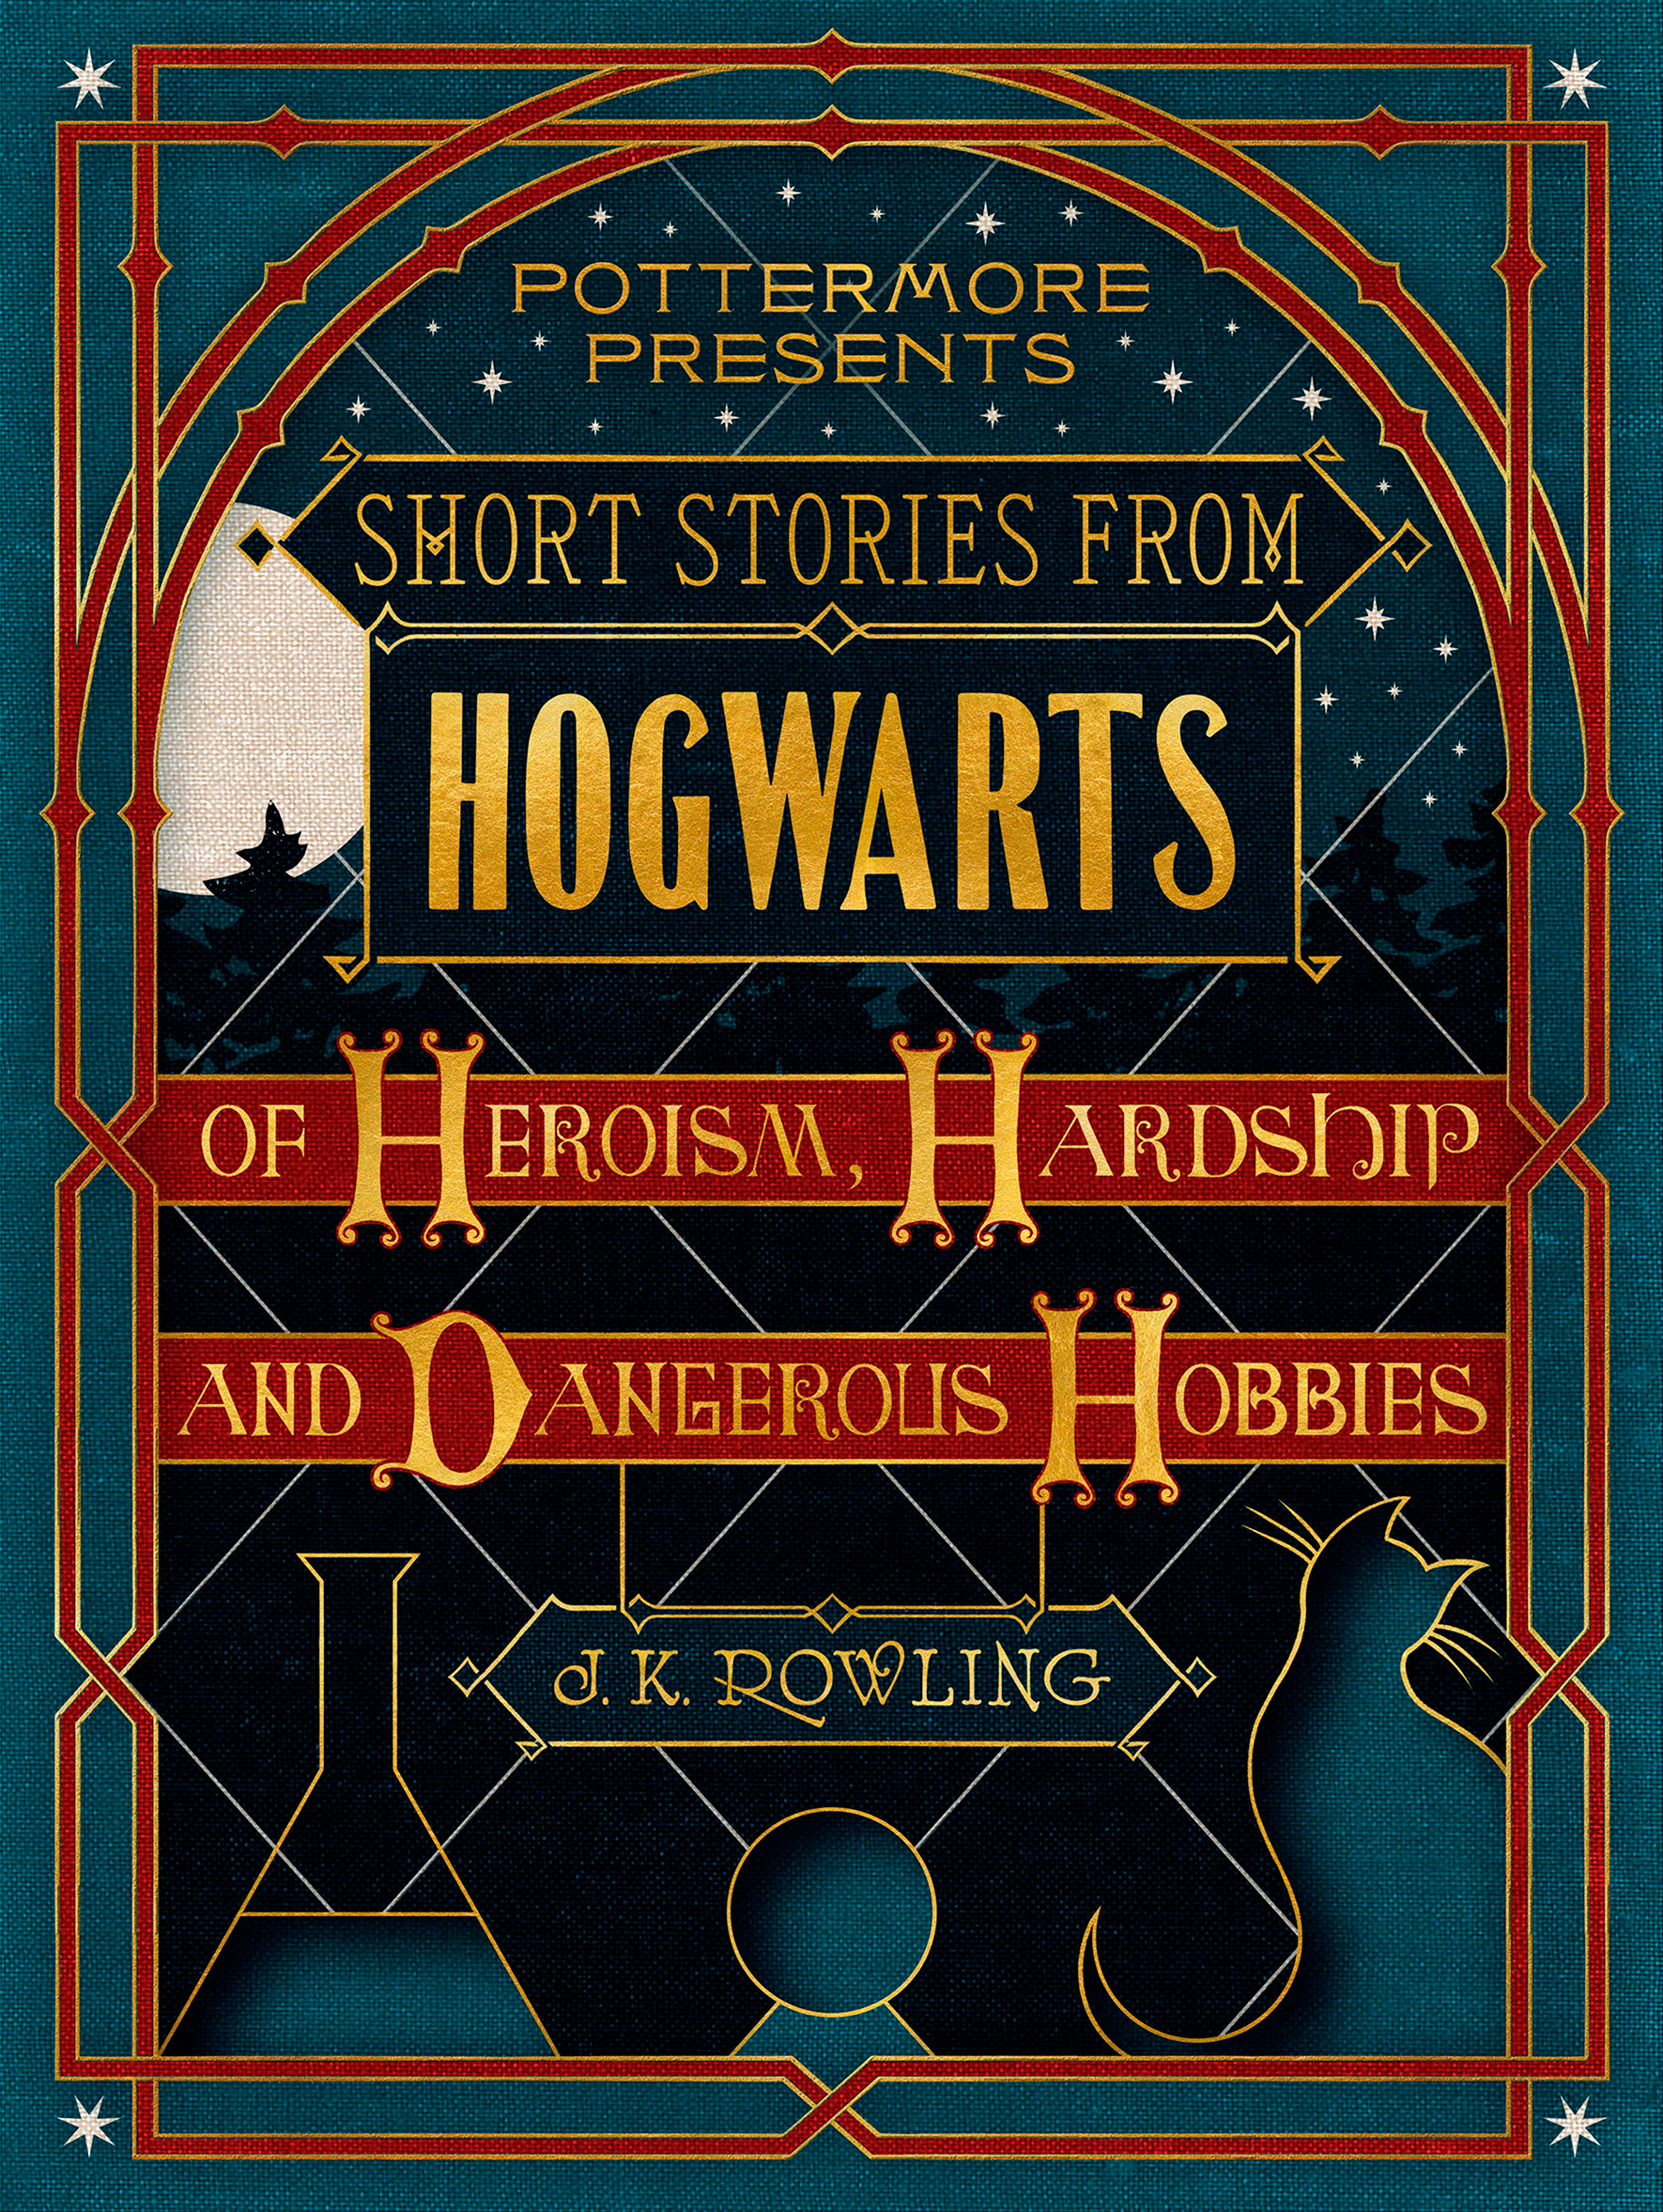 Image result for short stories from hogwarts book